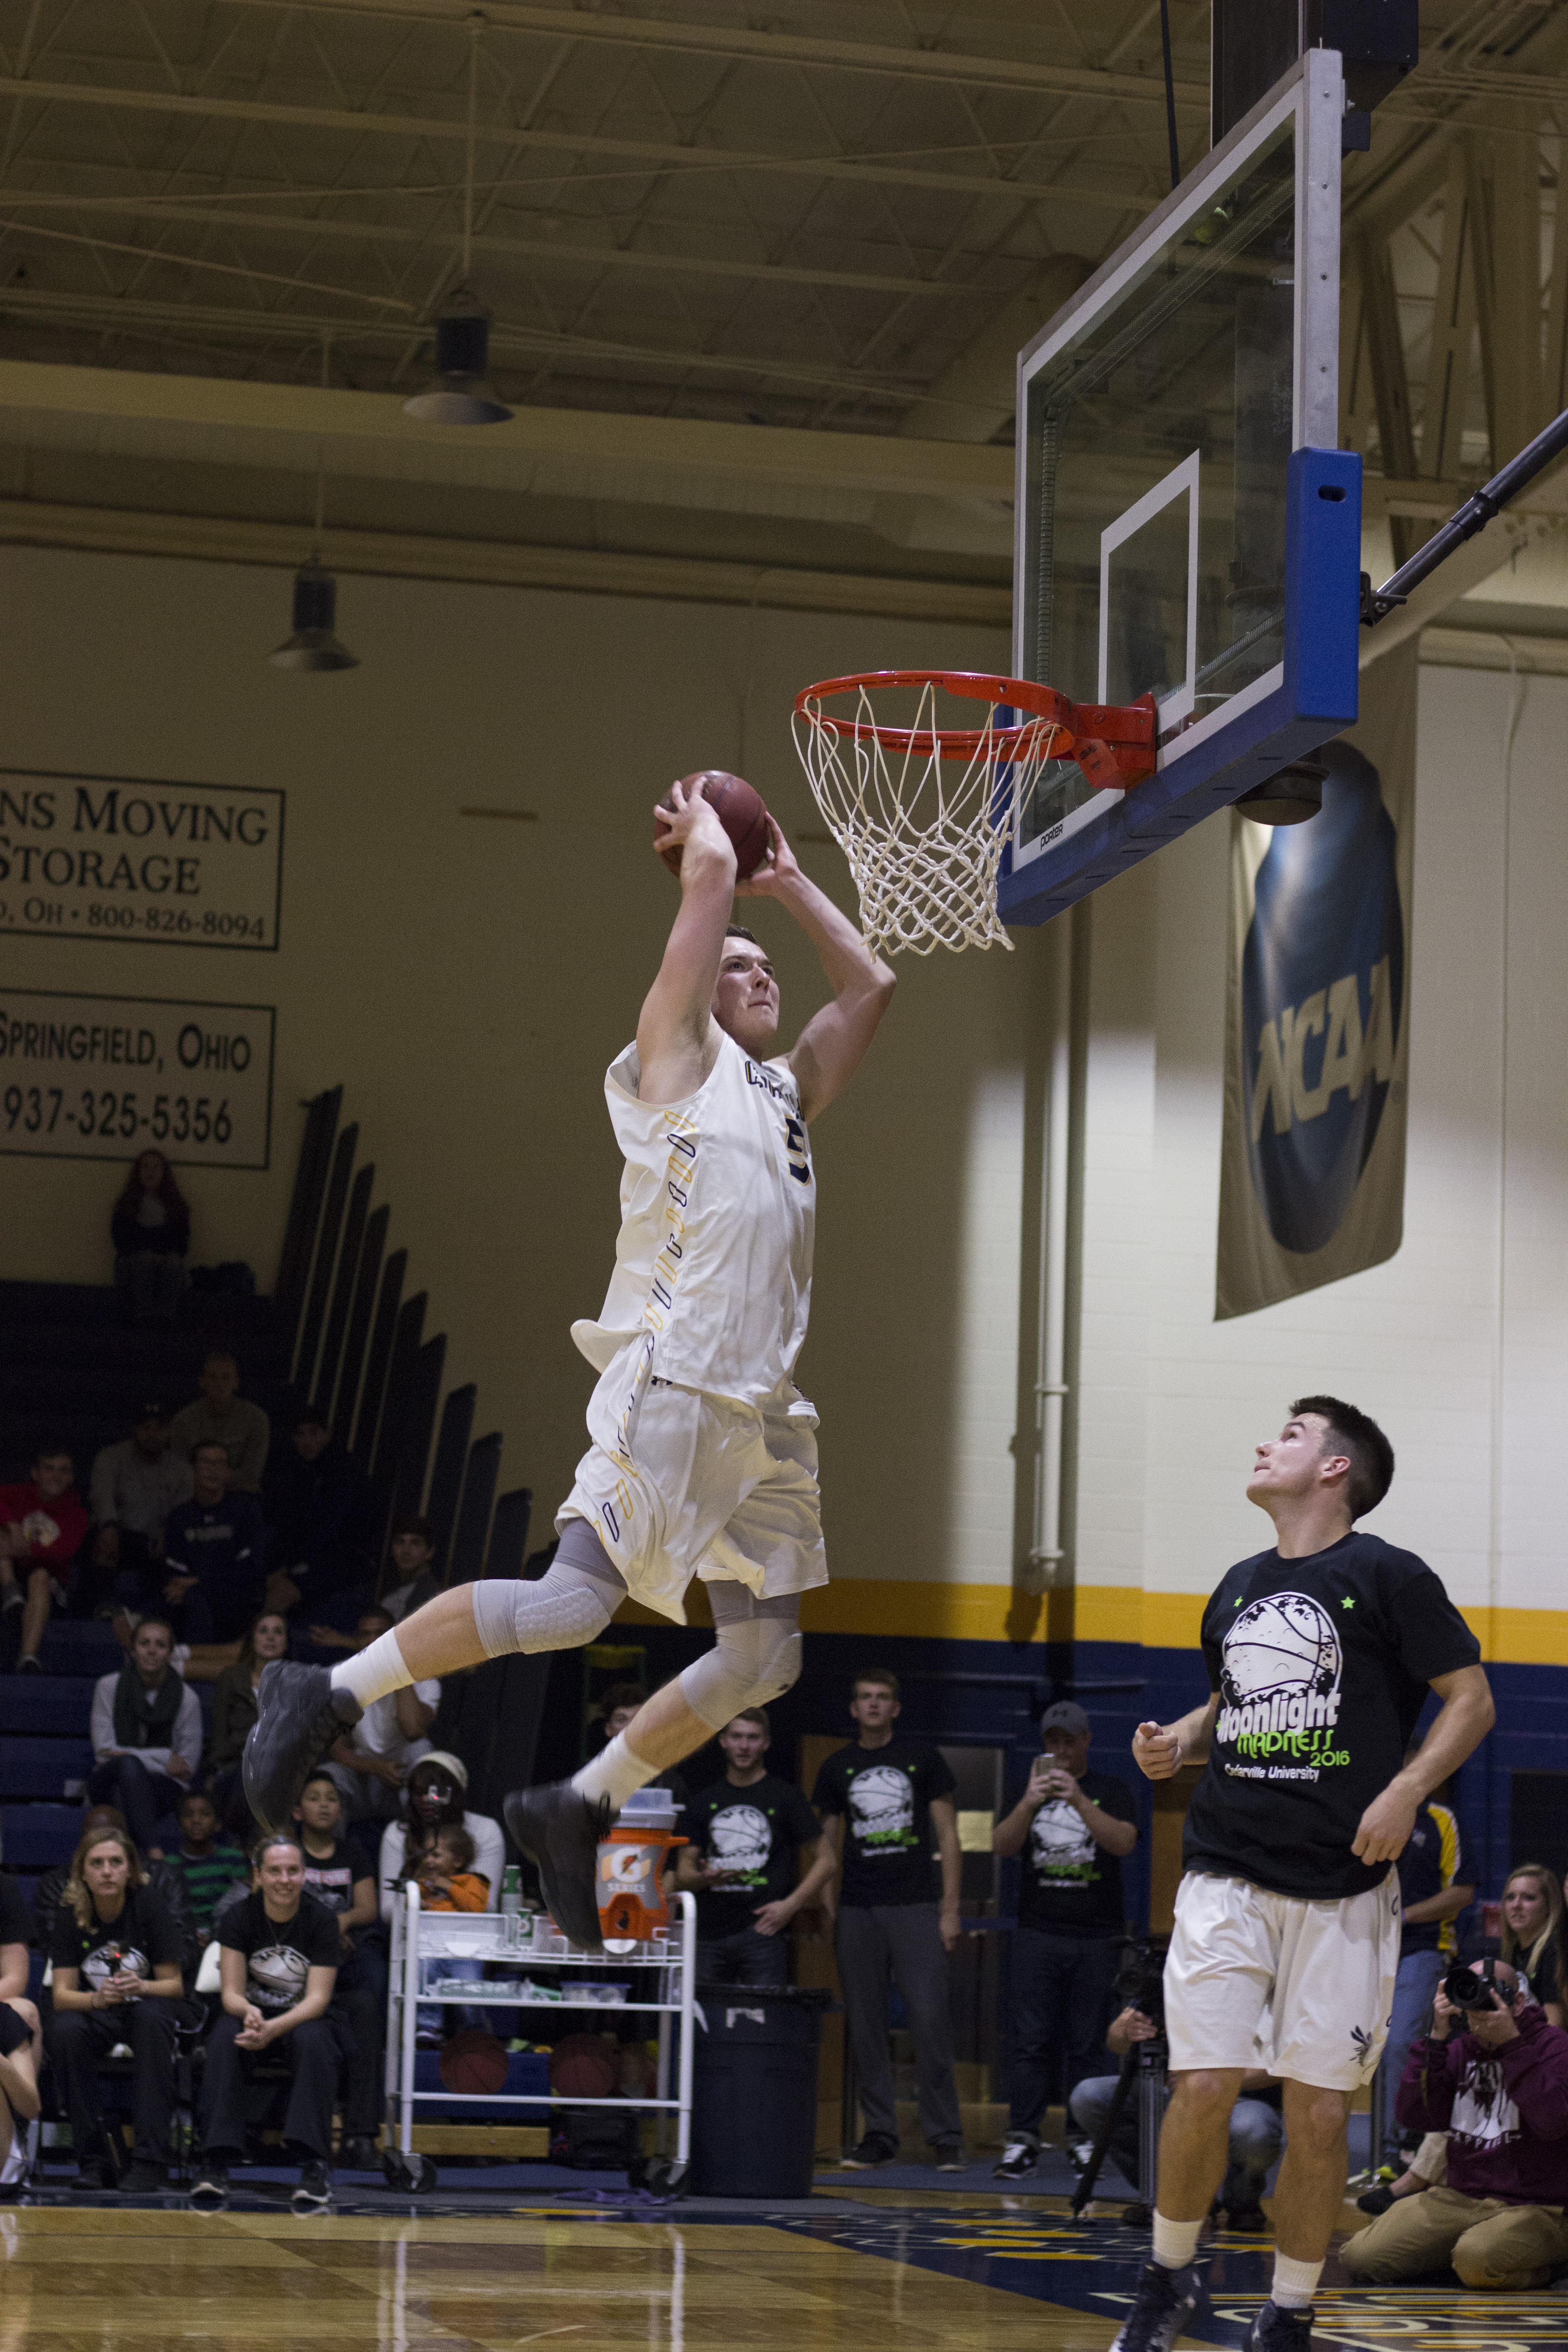 Senior Easton Bazzoli gives it his all during the dunking challenge, the night's closing event.